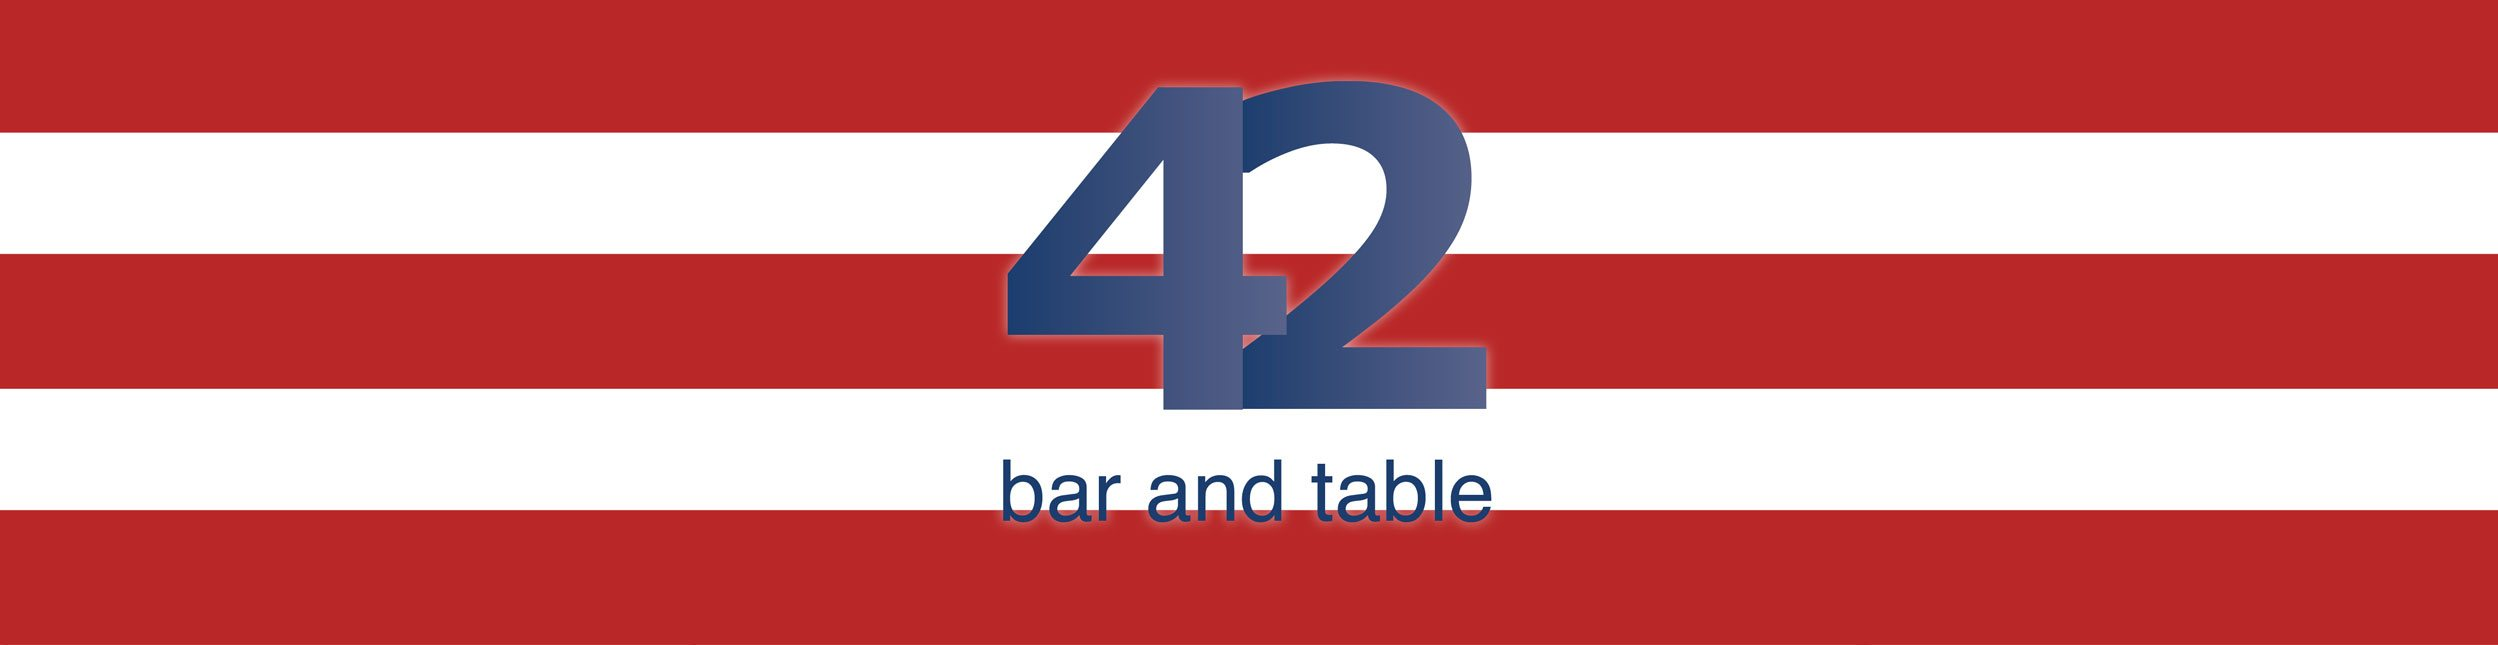 42 Bar and Table